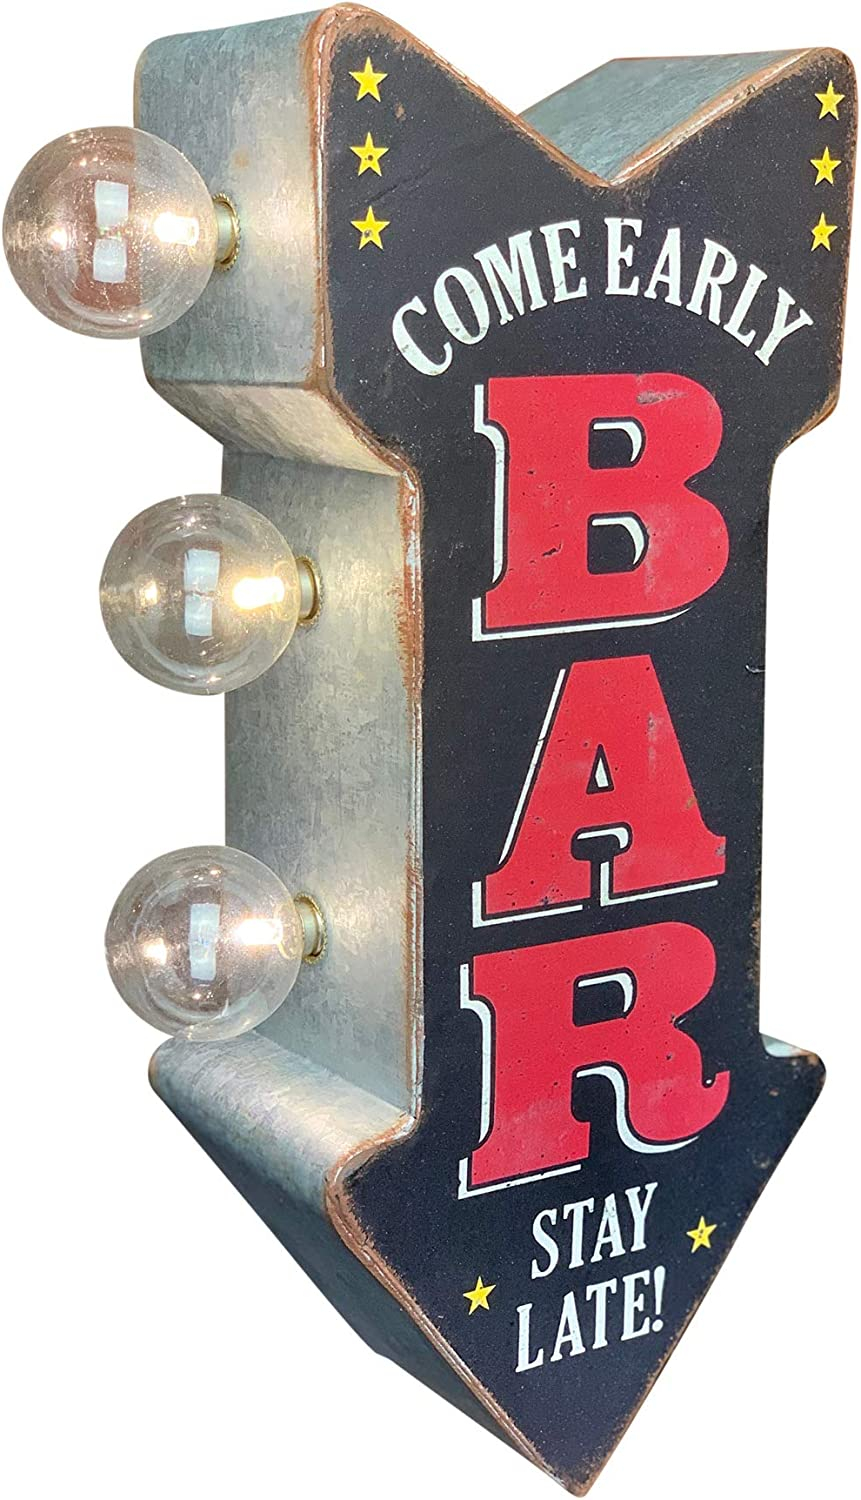 "BAR Double Sided LED Sign, Come Early Stay Late, Arrow Shaped, 12"" Distressed Retro Vintage Metal Design, Battery Powered with Large Marquee Style Light Bulbs"